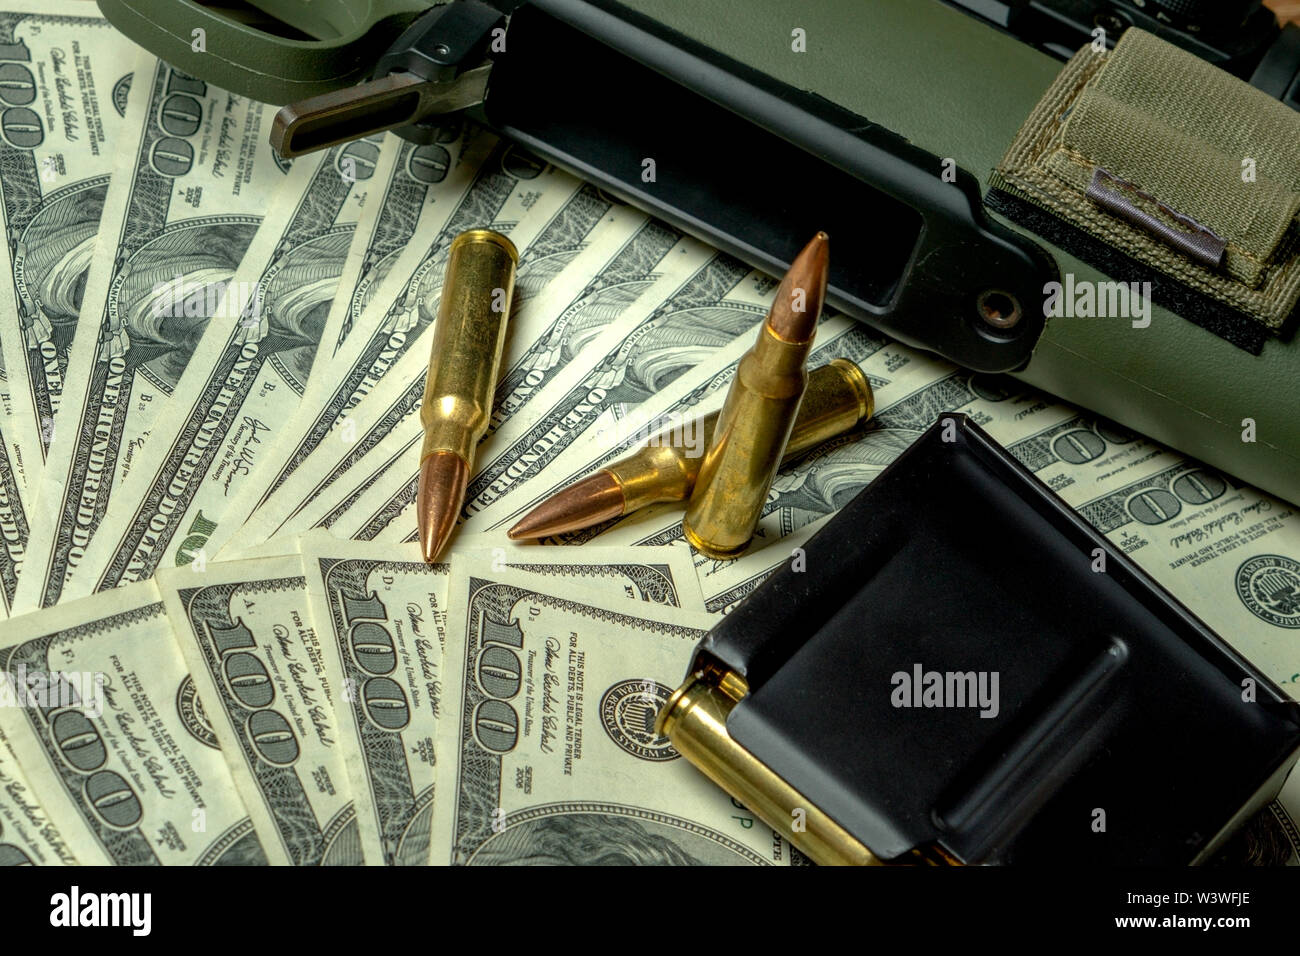 Rifle, magazine and cartridges on hundred dollar bills. Concept for crime, contract killing, paid assassin, terrorism, war, global arms trade, weapons - Stock Image